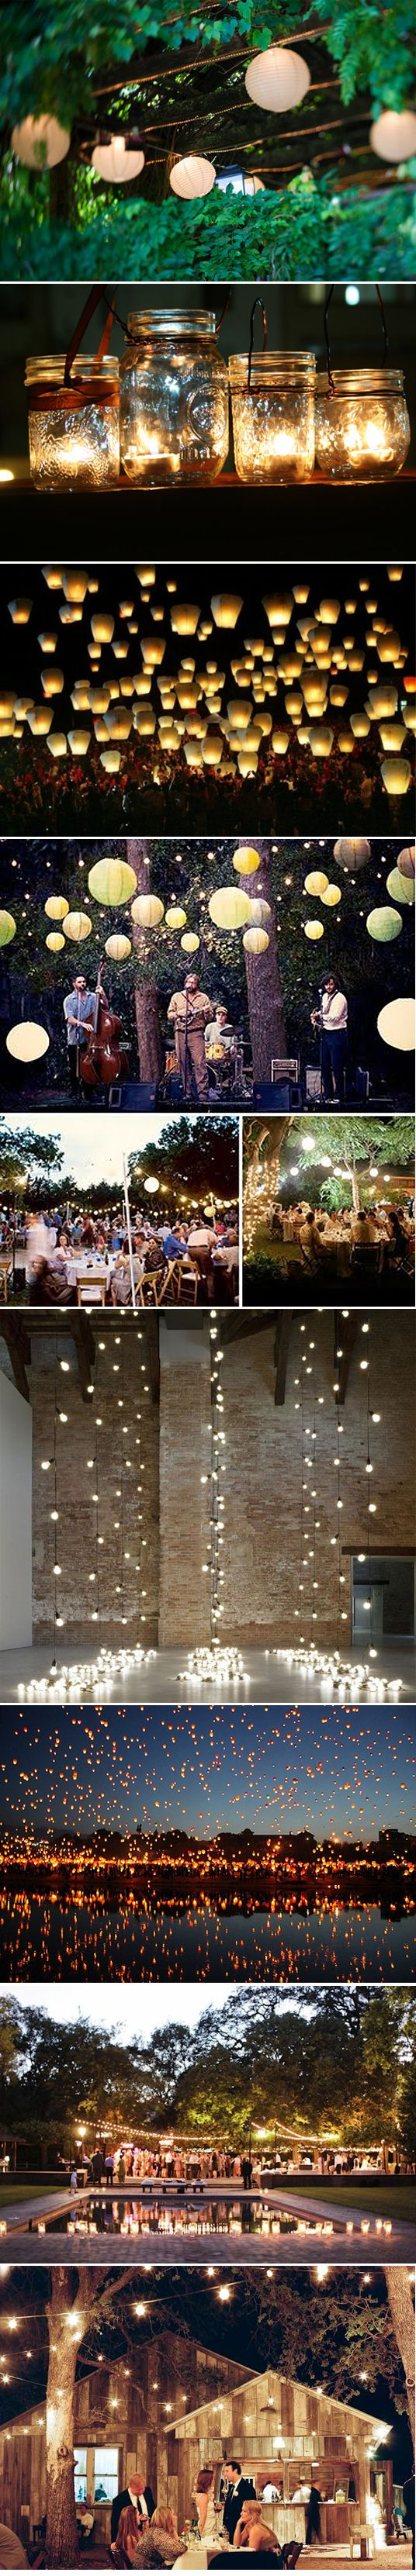 DIY lights and lanterns for outdoor weddings or parties! Love the outdoor